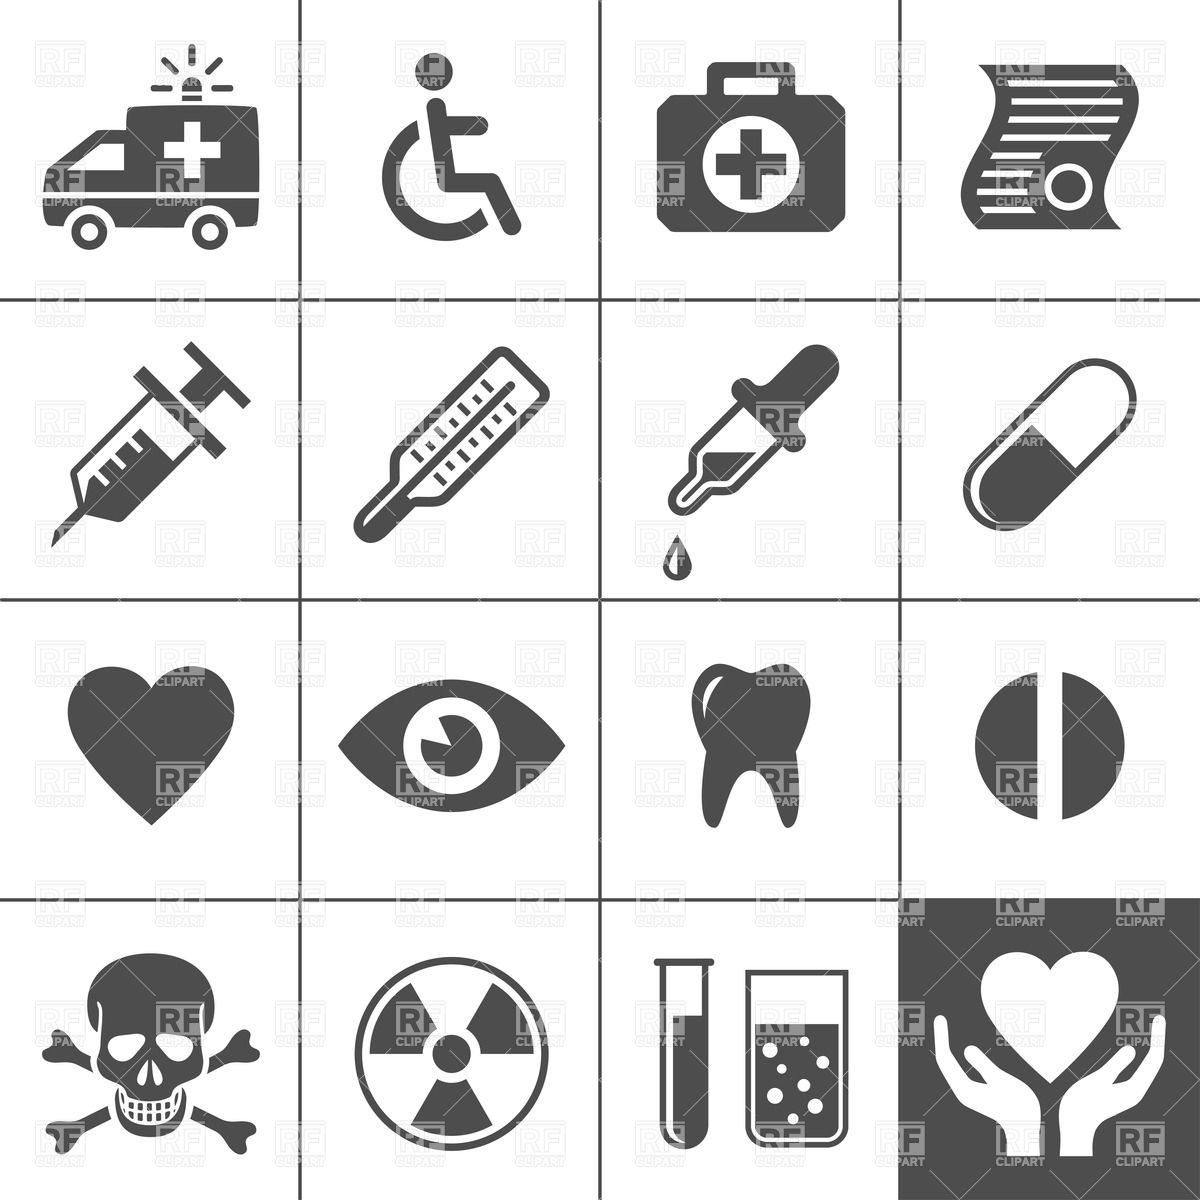 1200x1200 Collection Of Free Clipart Medical Symbol High Quality, Free